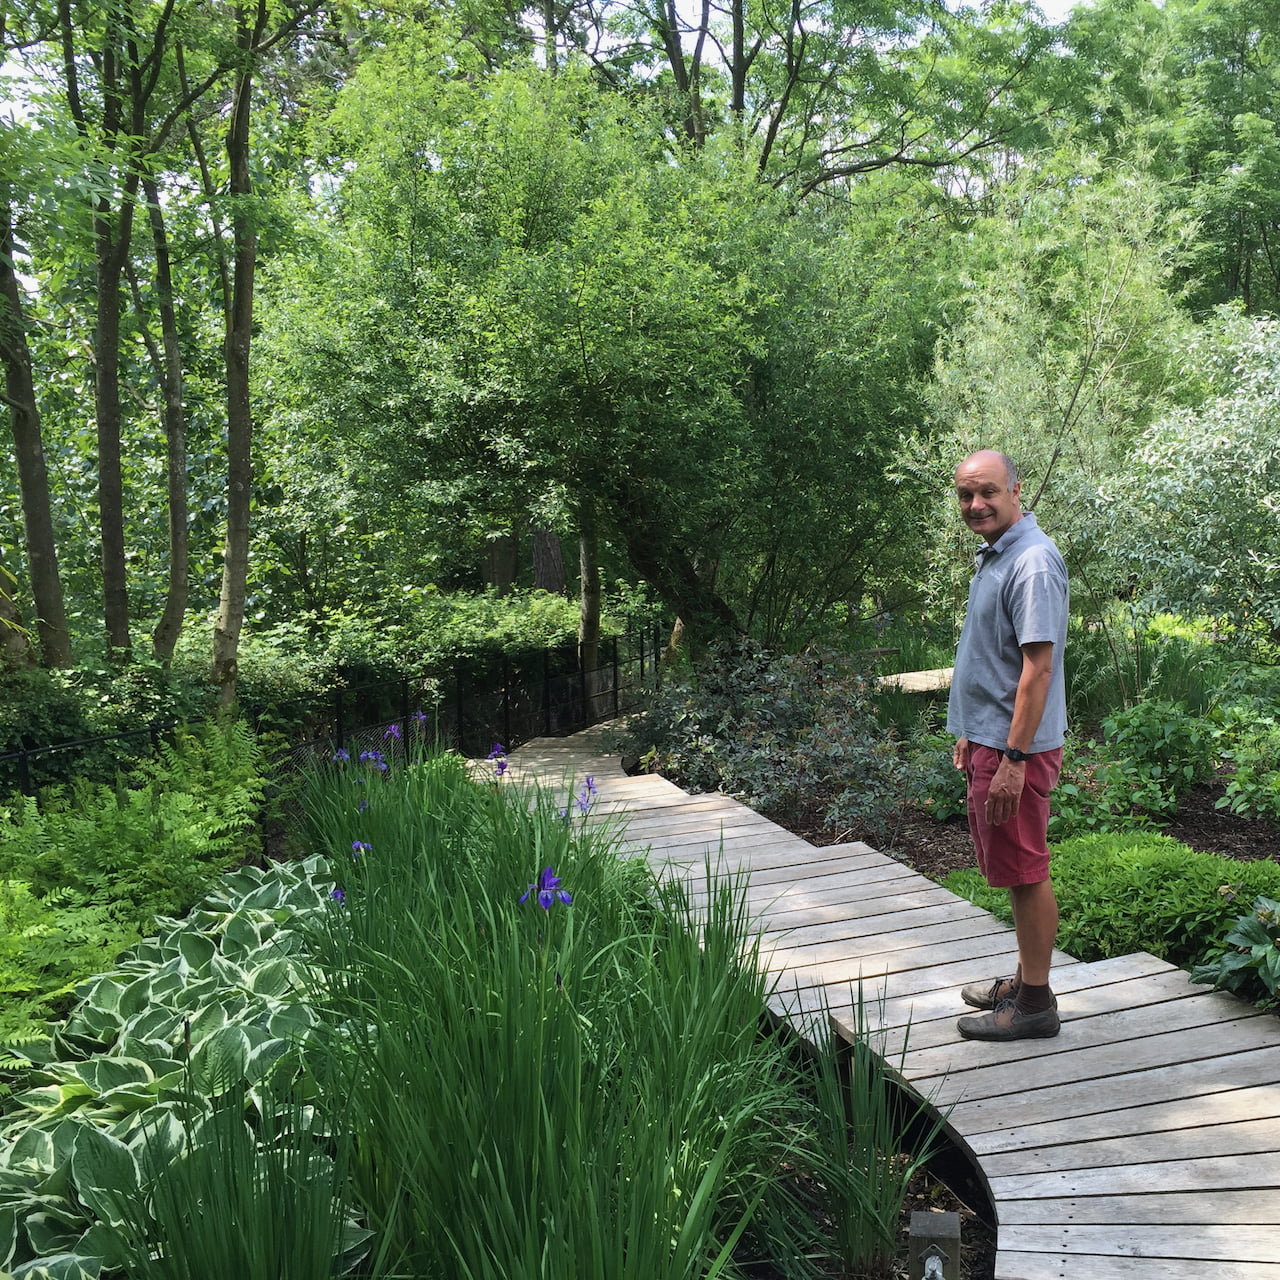 the boardwalk over the bog garden in this large Buckinghamshire garden. This is Rob who built it